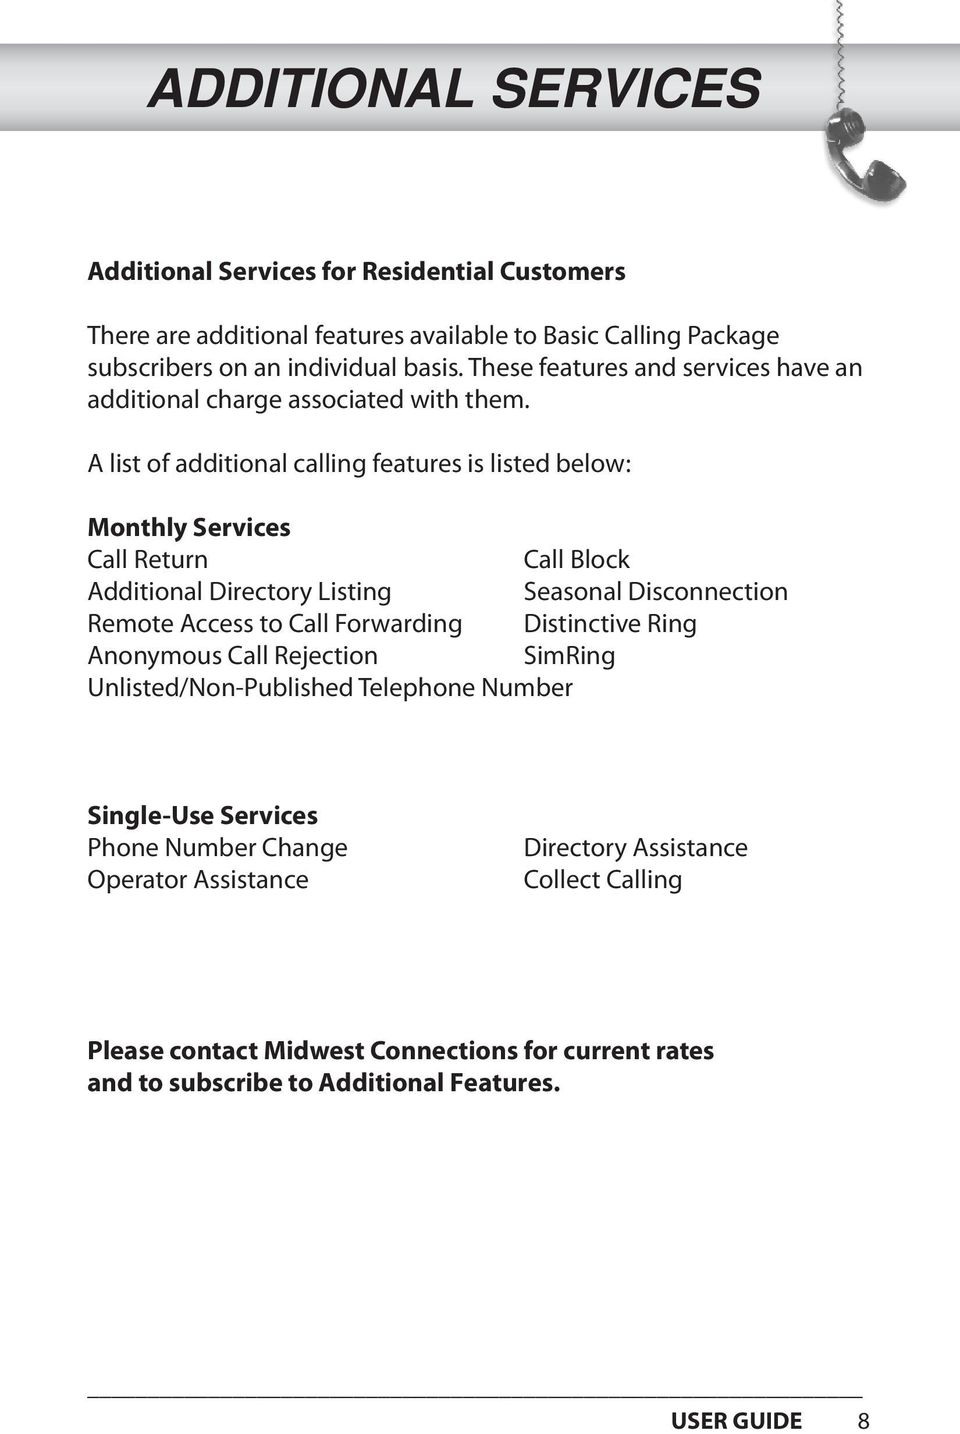 A list of additional calling features is listed below: Monthly Services Call Return Call Block Additional Directory Listing Seasonal Disconnection Remote Access to Call